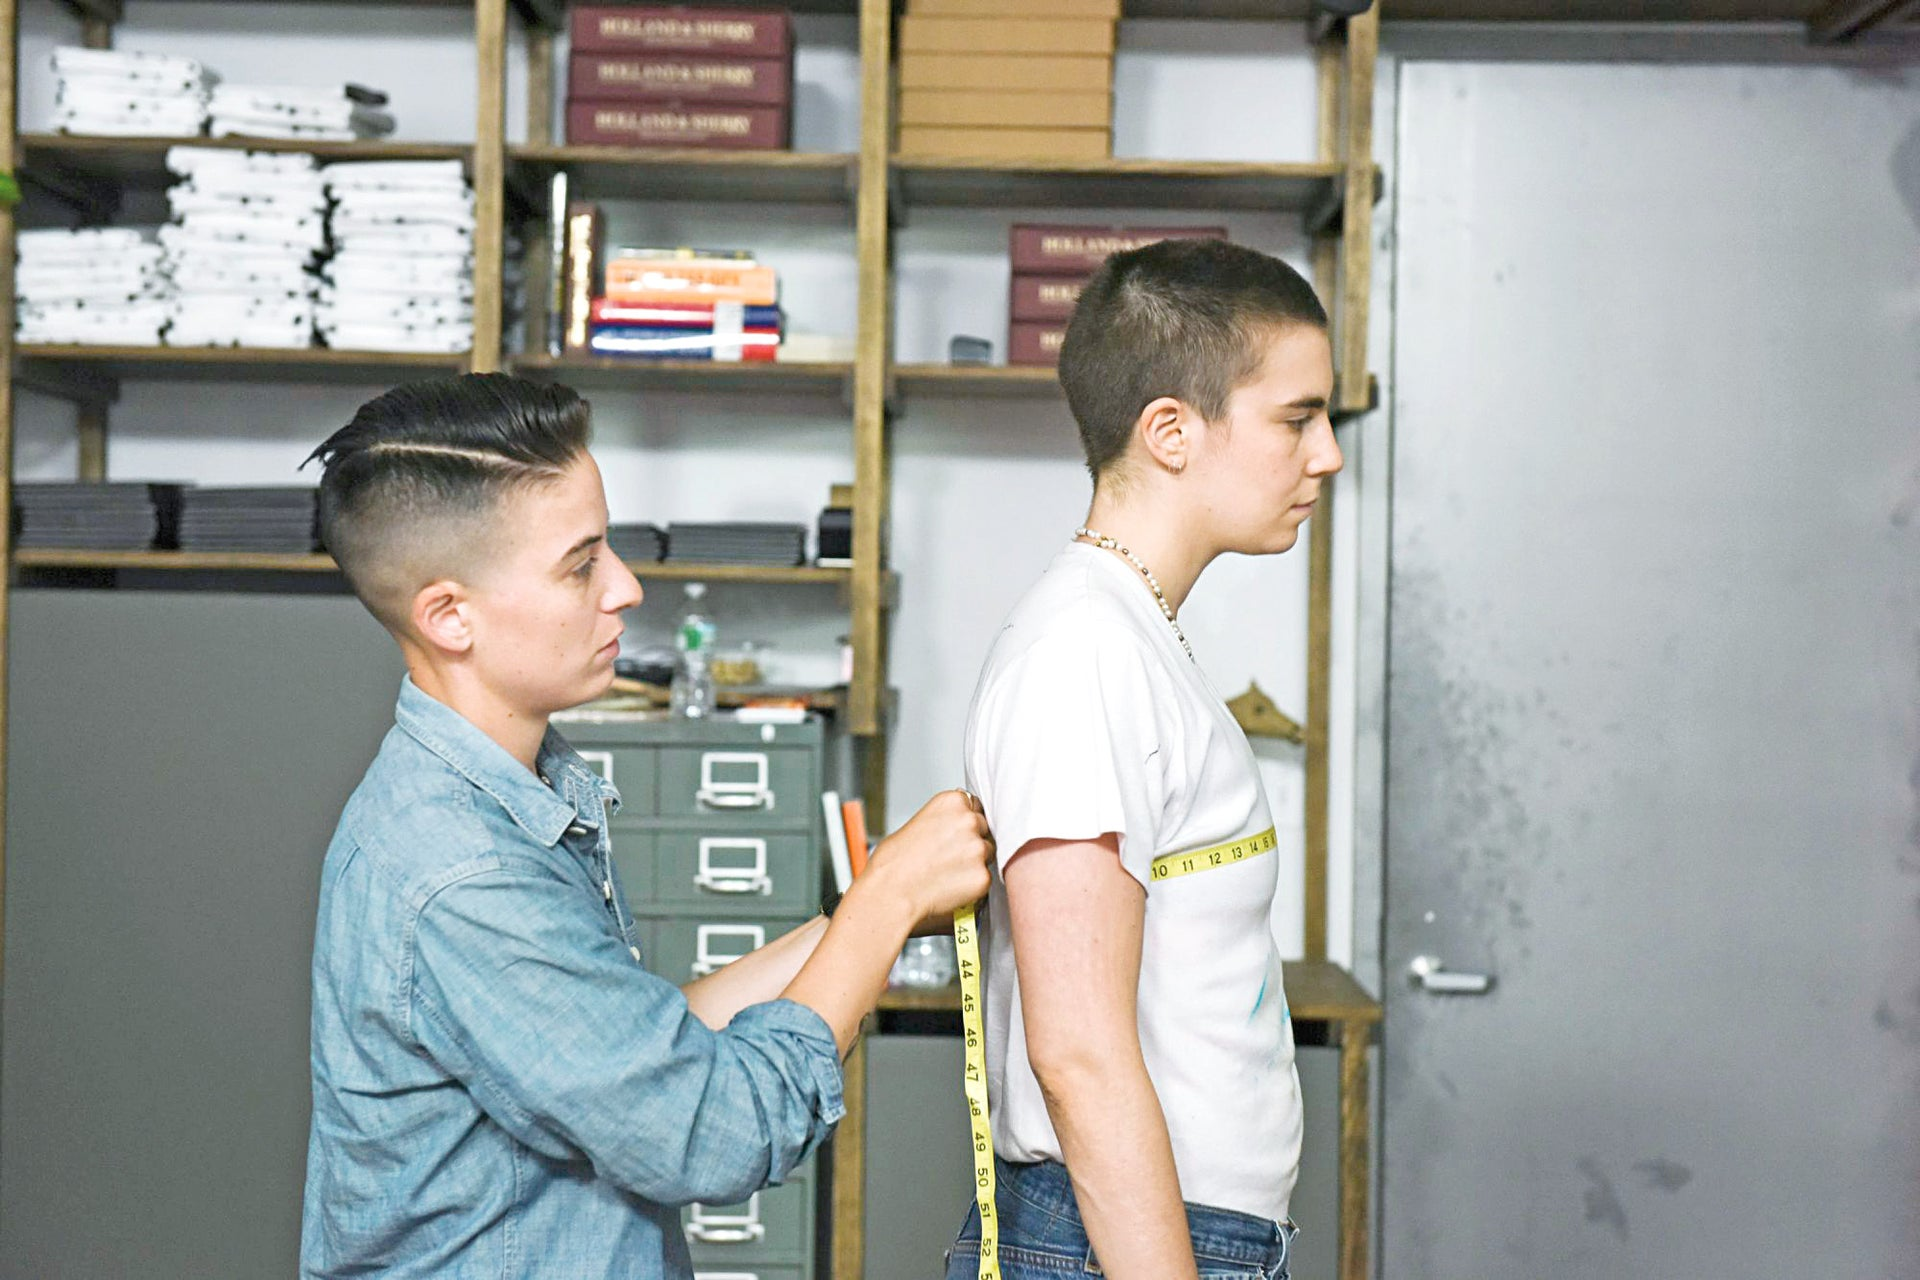 Rae Tutera measures Grace Dunham in a scene from 'Suited.'